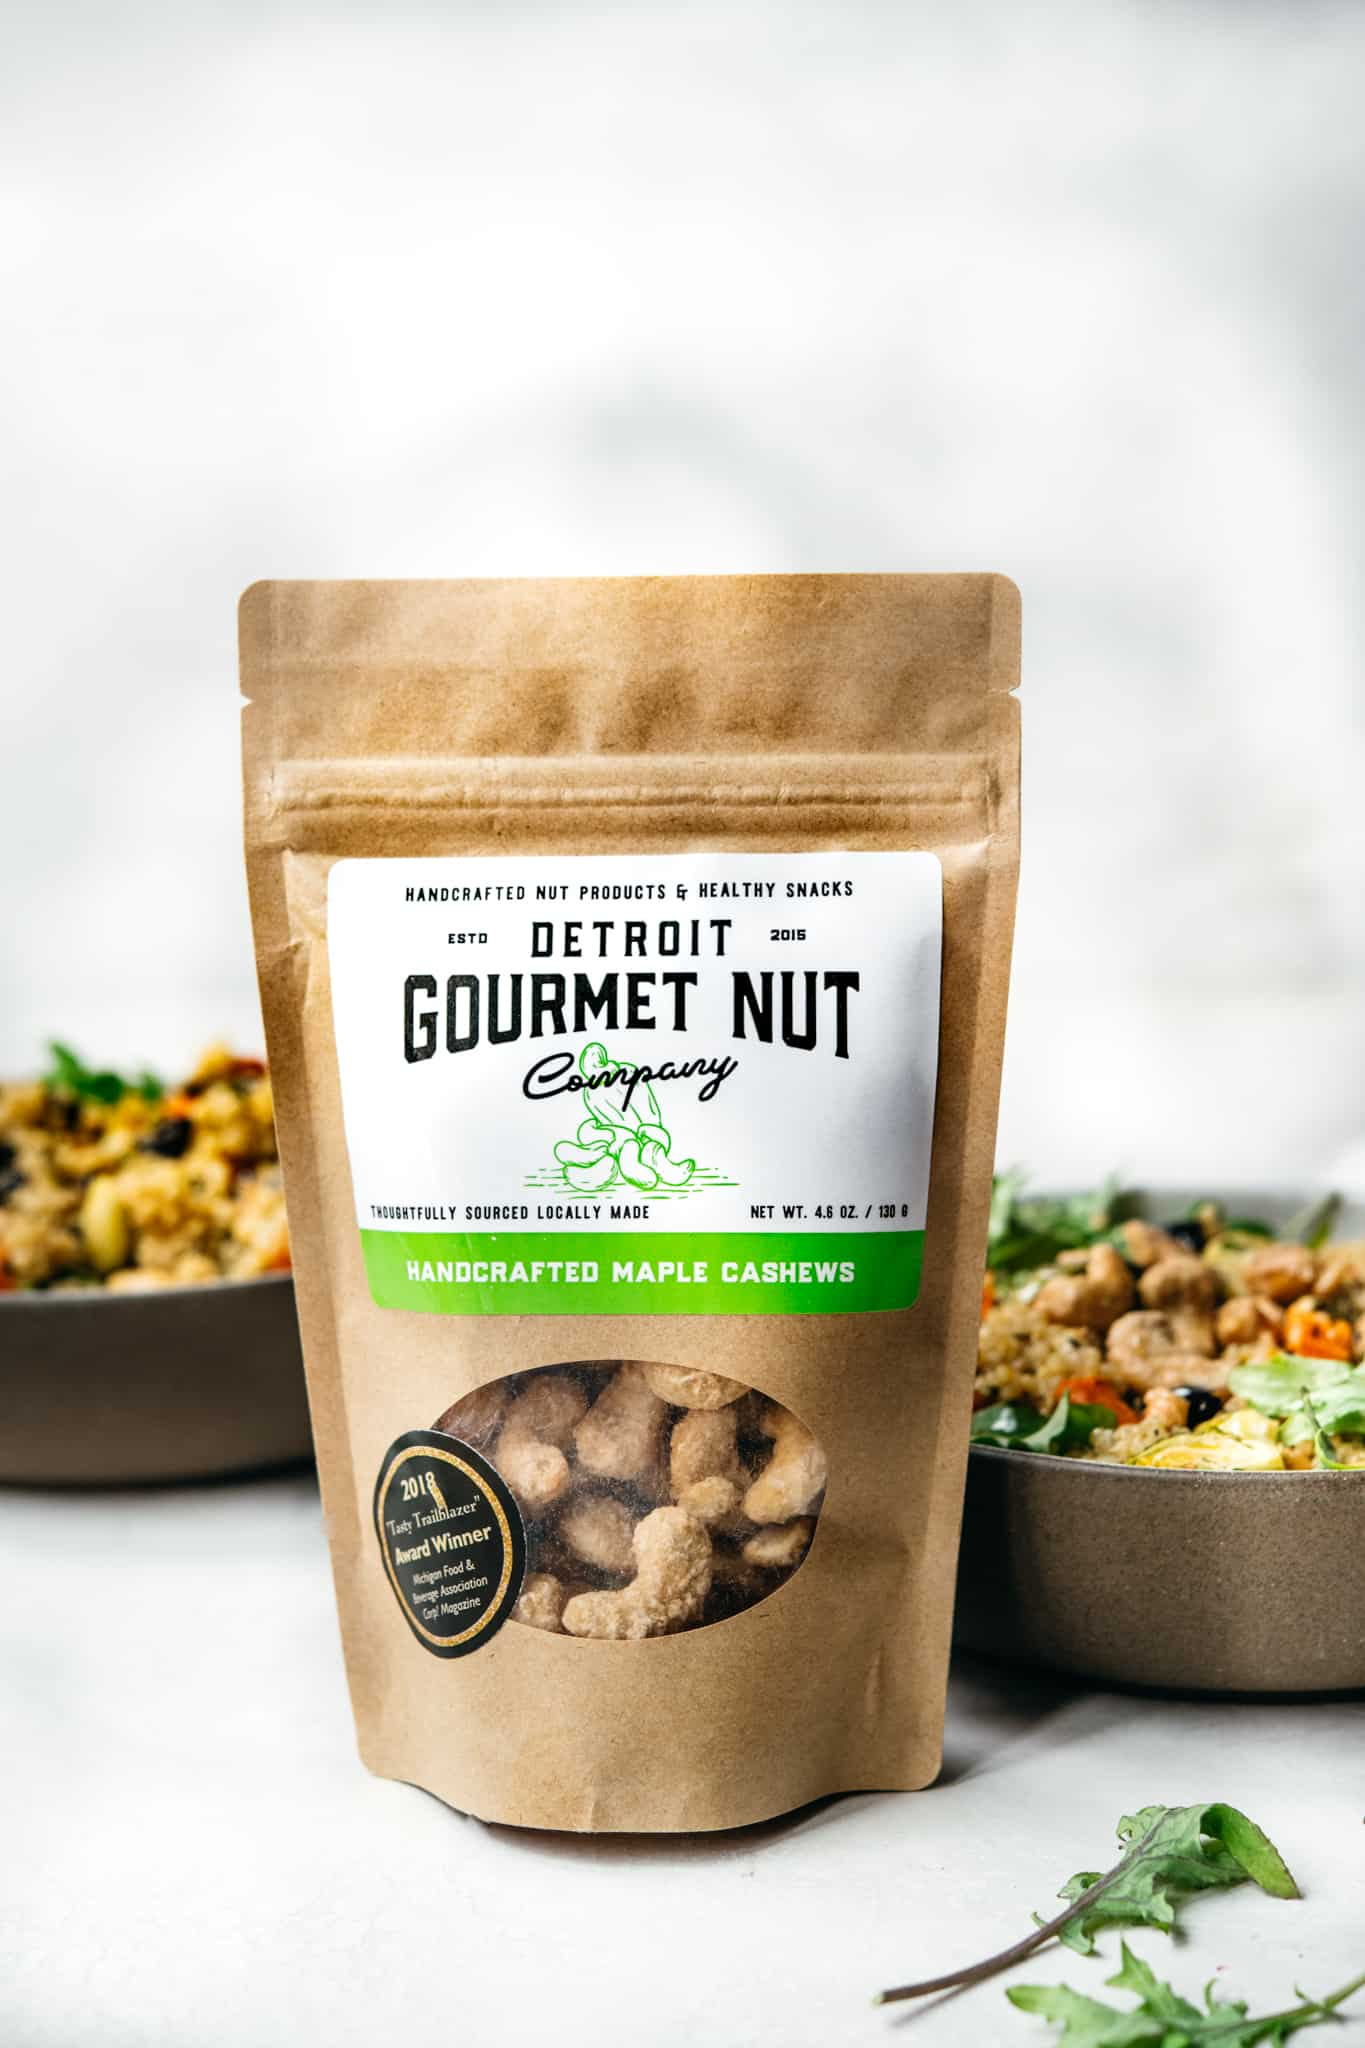 Detroit Gourmet Nut Company handcrafted maple cashews